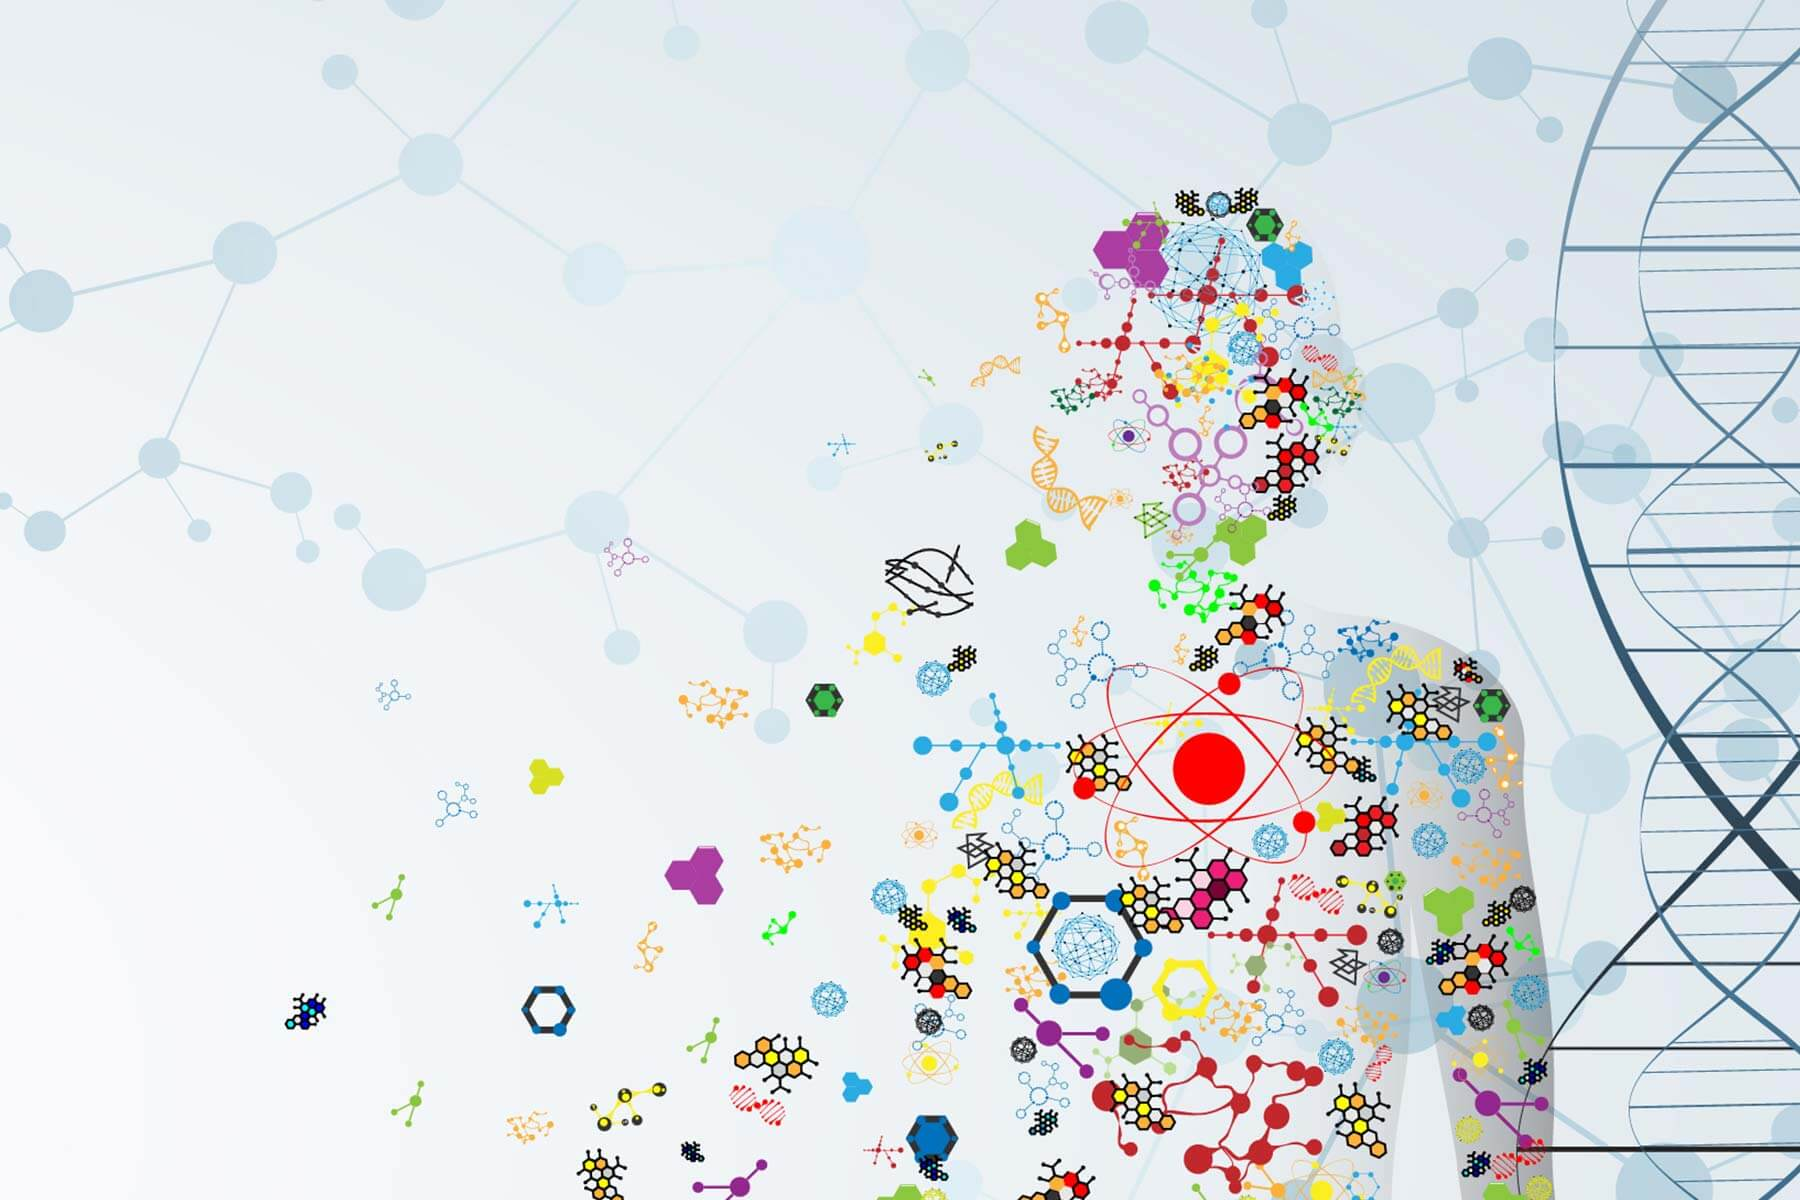 MultiPEN: A network-driven approach to combine multi-omics datasets